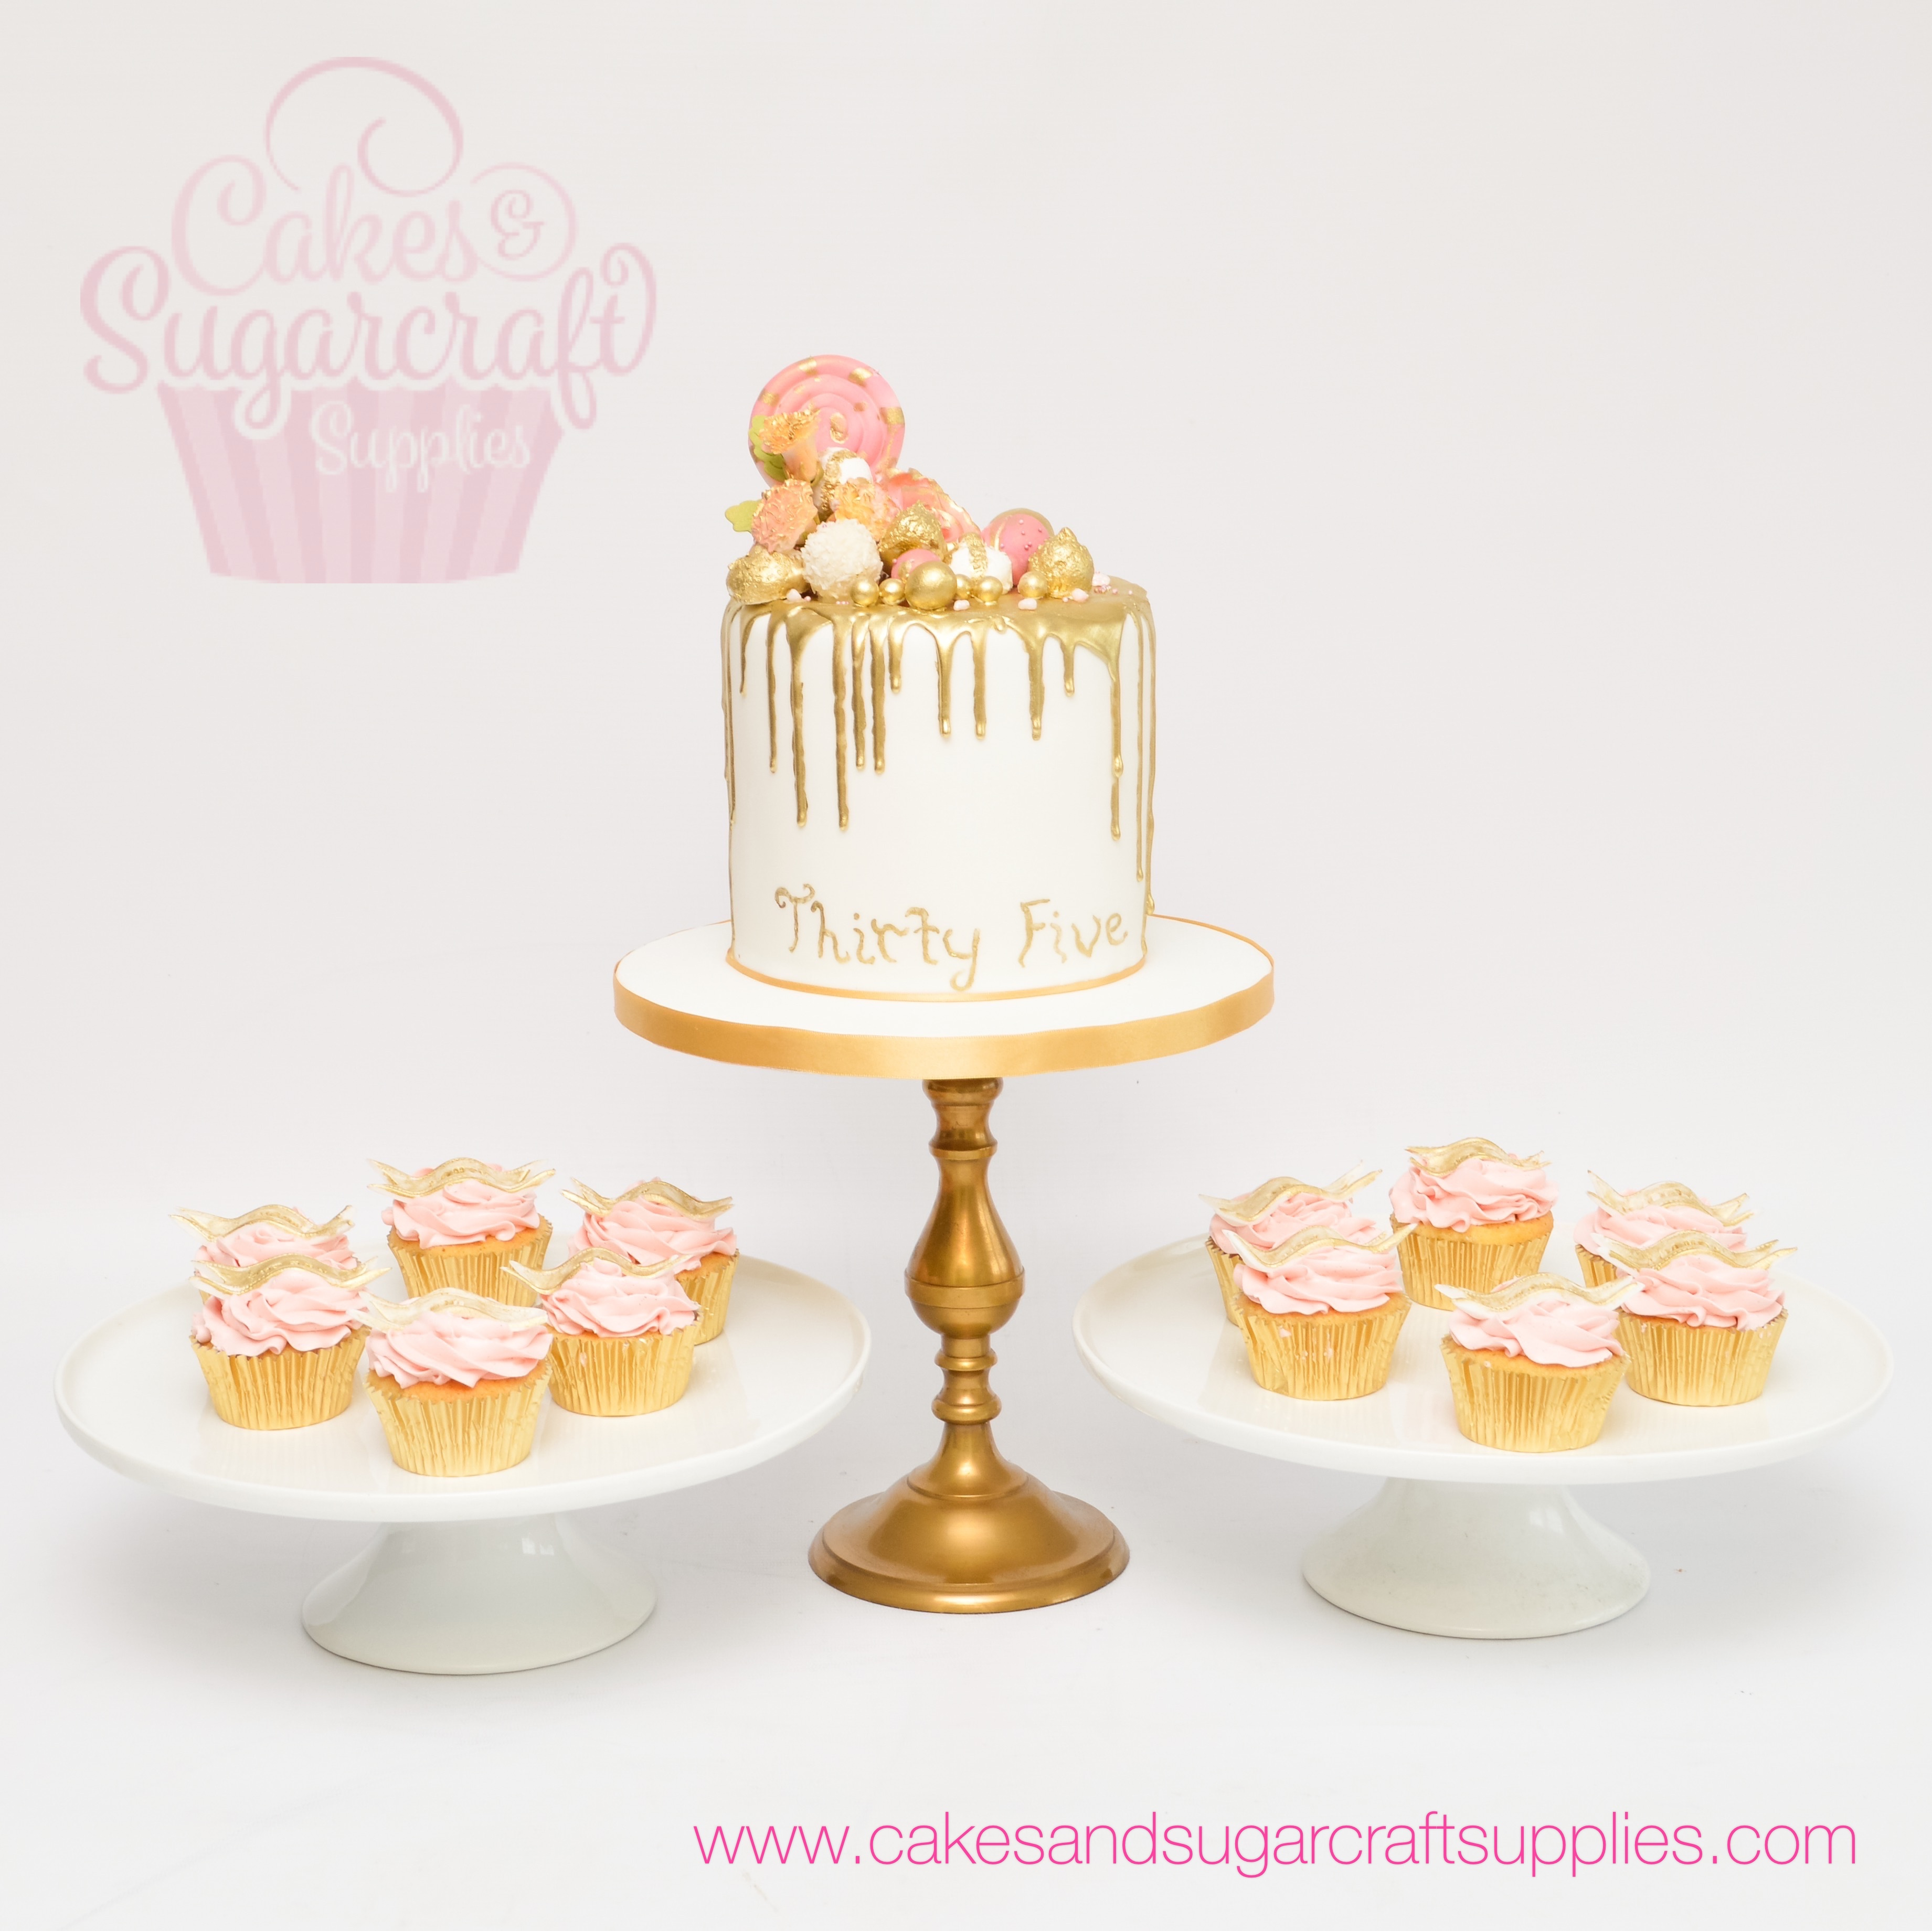 Fabulous Ladies Birthday Cakes Cakes Sugarcraft Supplies Funny Birthday Cards Online Alyptdamsfinfo